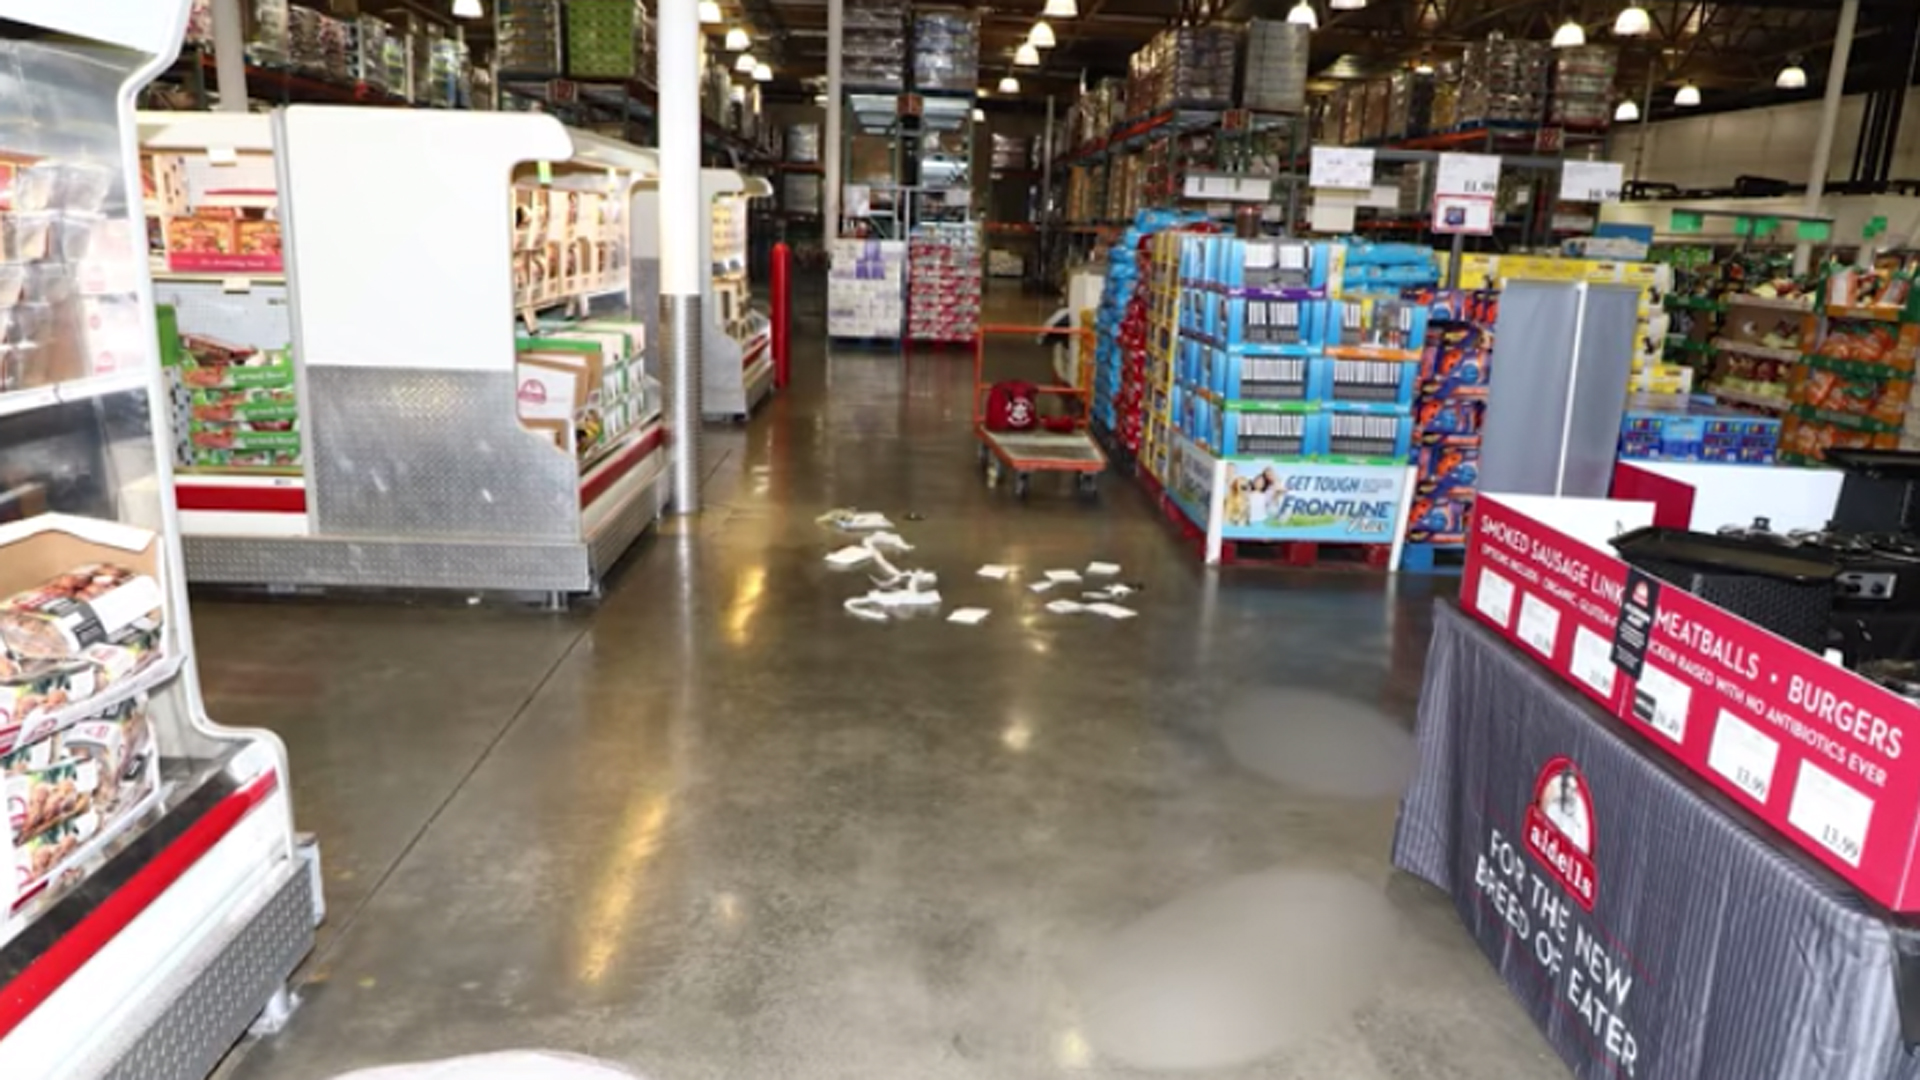 The Corona Costco where a shooting occurred on June 14, 2019, is seen in an image released by the Los Angeles Police Department.